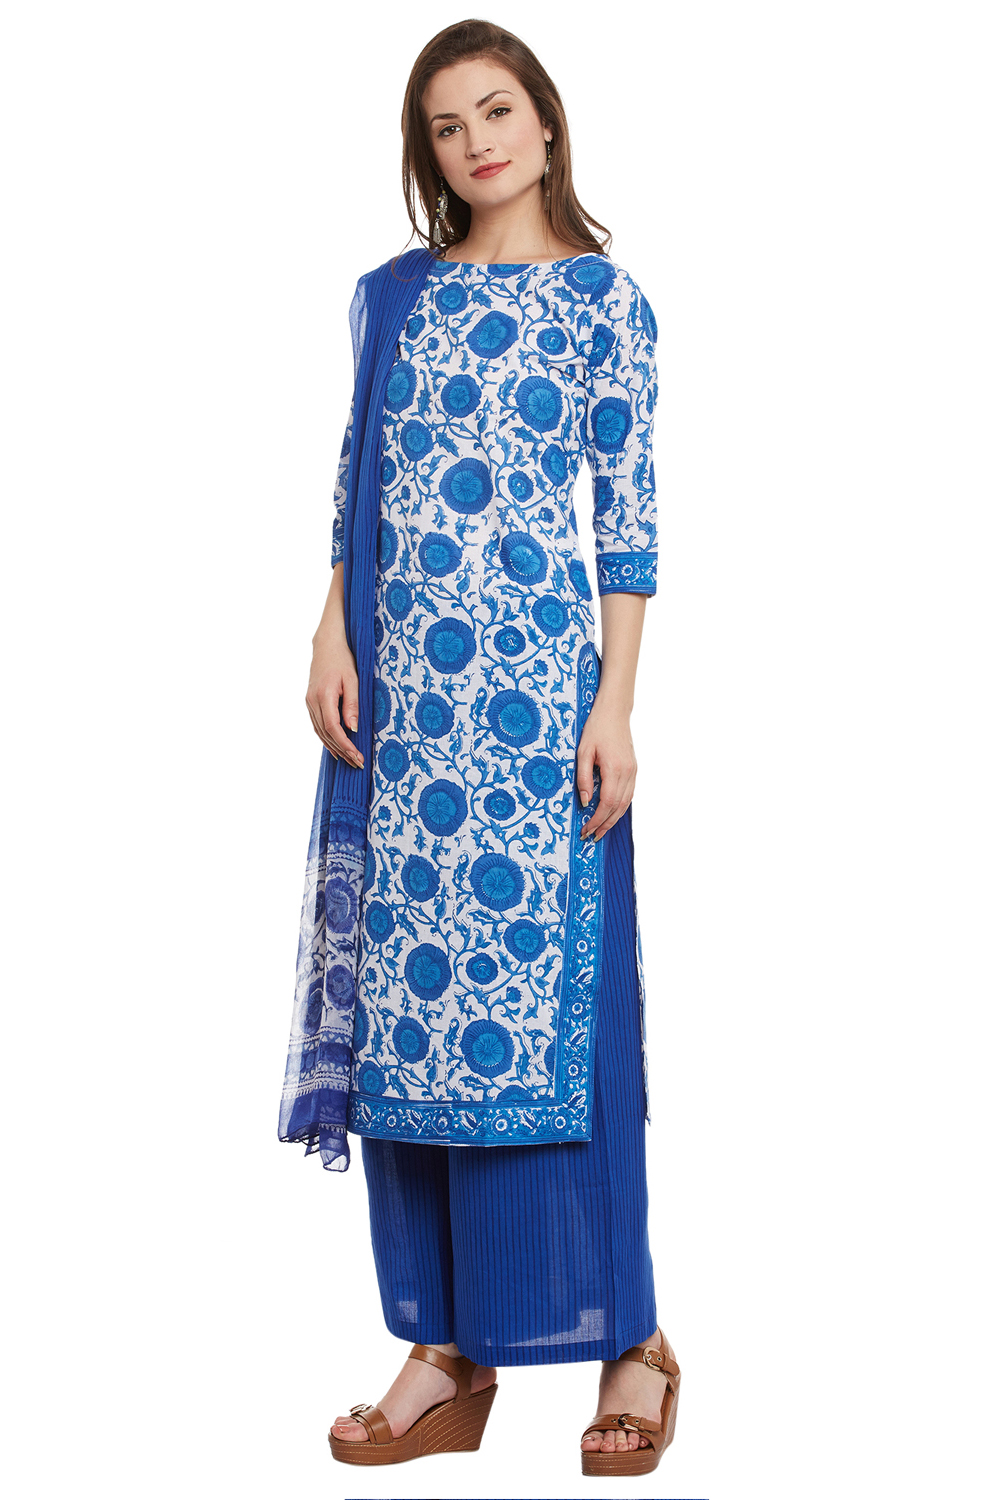 Blue Cotton Churidar Dress Material